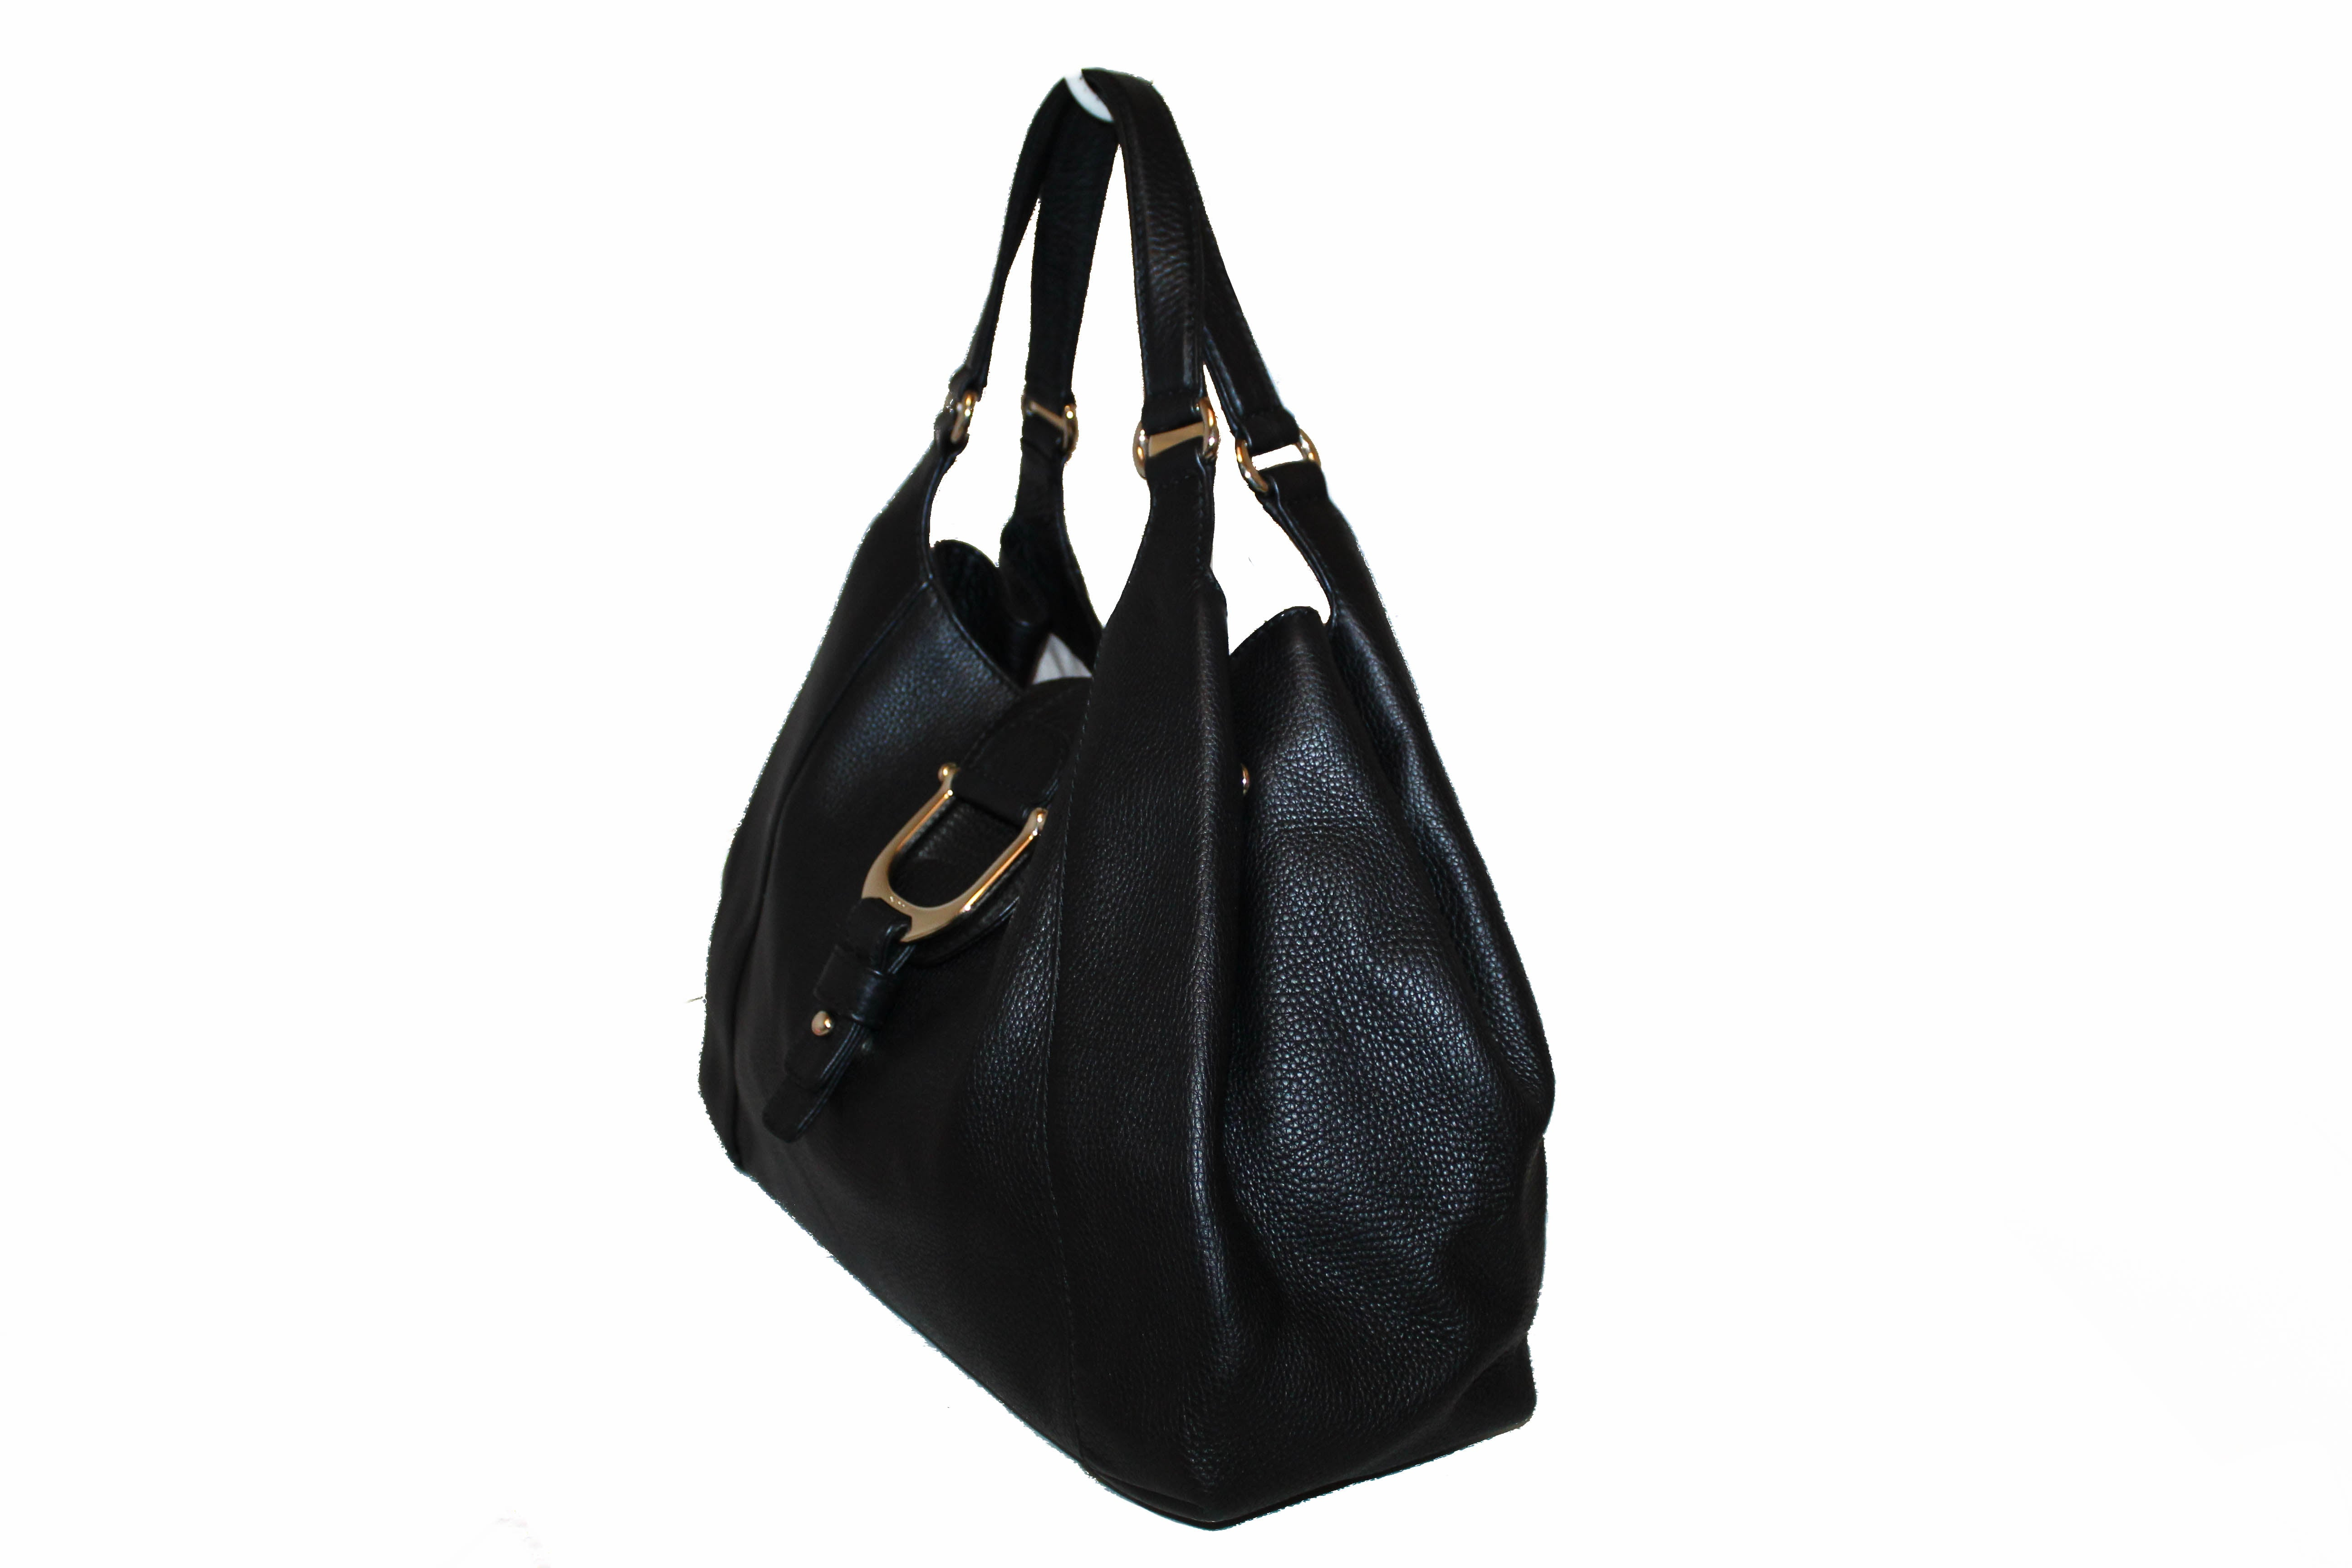 Authentic Gucci D-ring Black Pebbled Leather Hobo Shoulder Bag